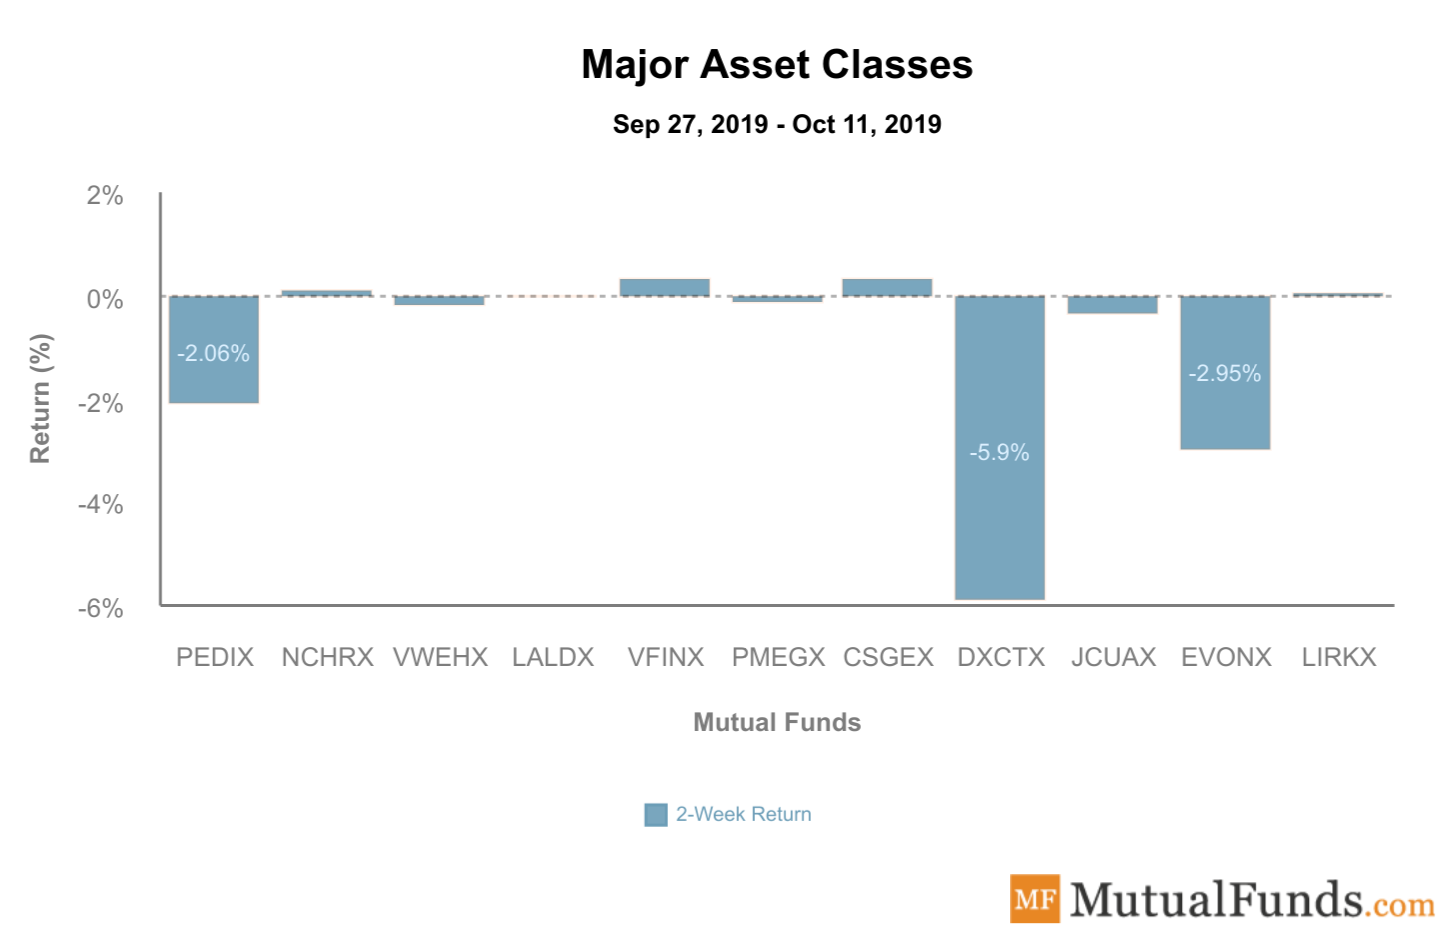 Major Asset Classes Performance - Oct 15, 2019